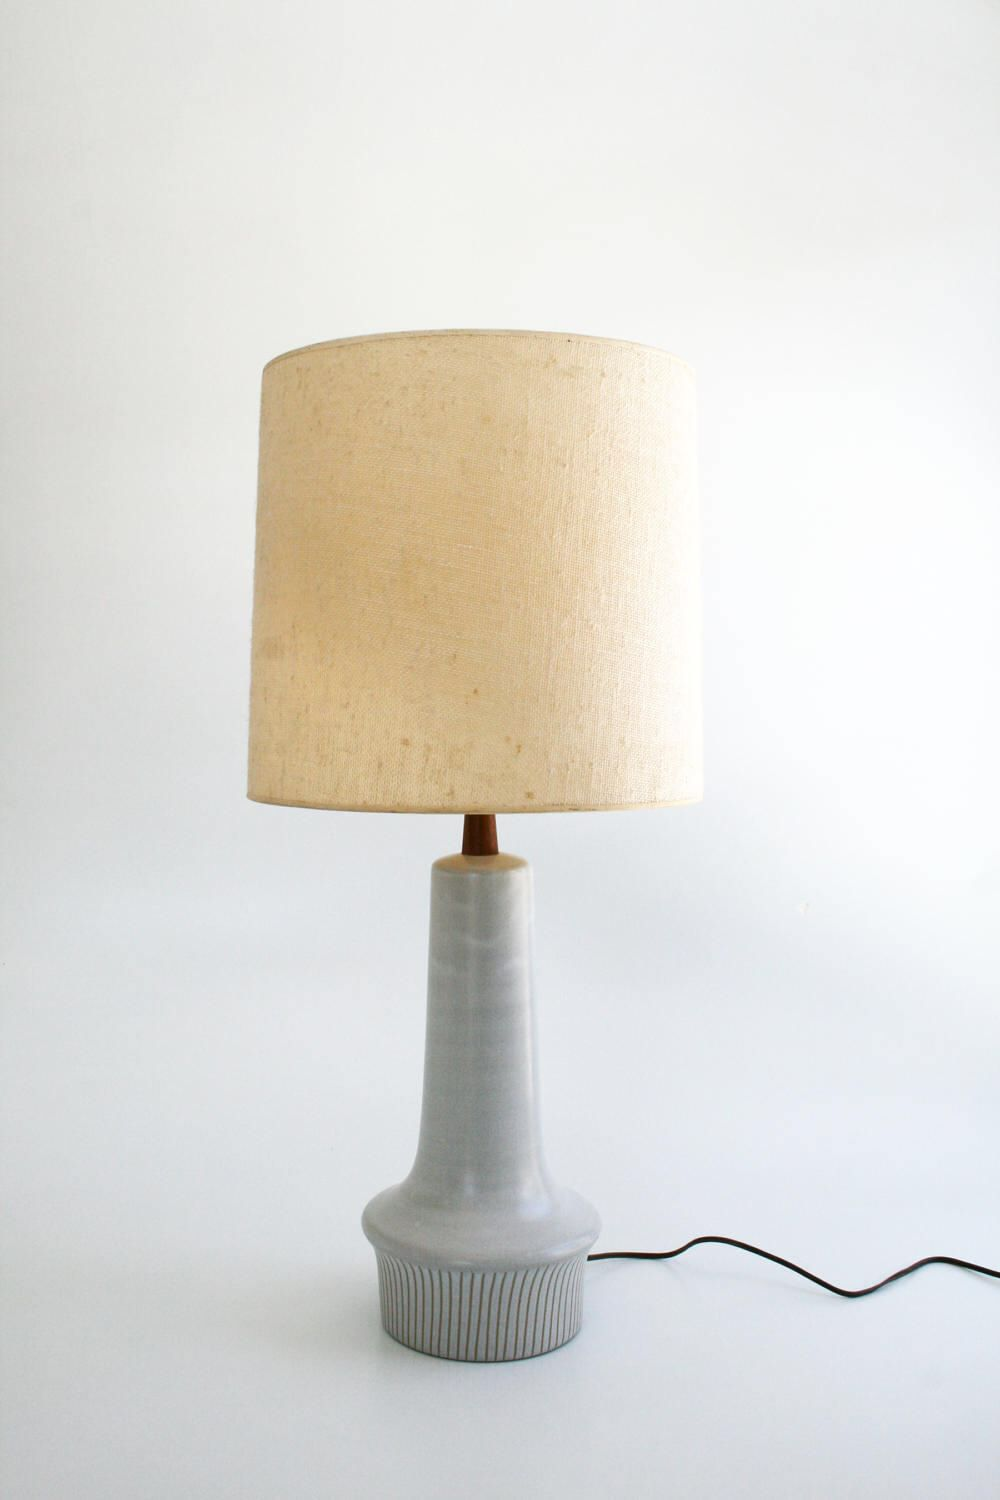 Martz marshall studios pottery table lamp mid century by modocado martz marshall studios pottery table lamp mid century by modocado on etsy https mozeypictures Images